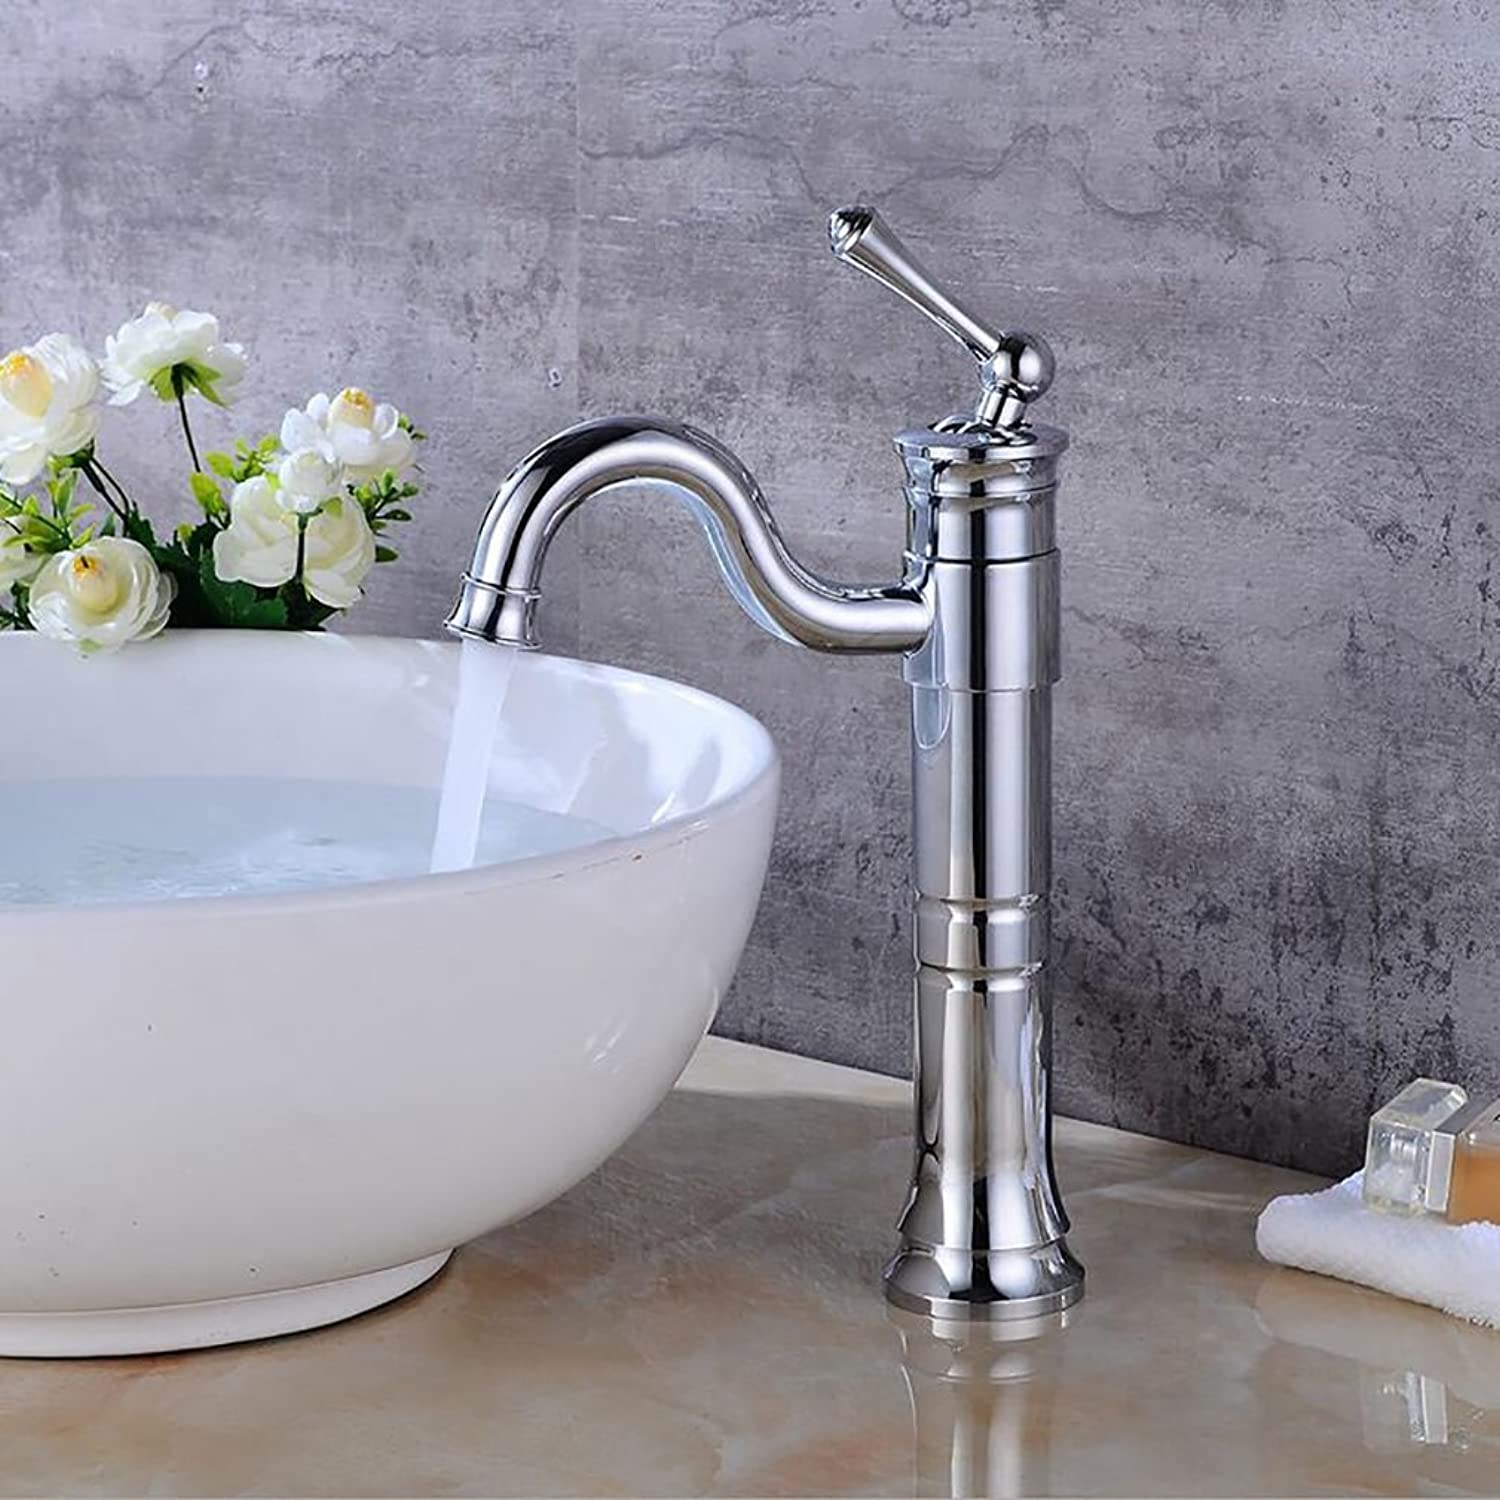 Bathroom accessories, easy to use and user-friendl Hot And Cold Taps,Basin Counter Basin redation Faucet,Bathroom Waterfall Tap,Retro Brass Single Spout Sink Mixer XIAHE